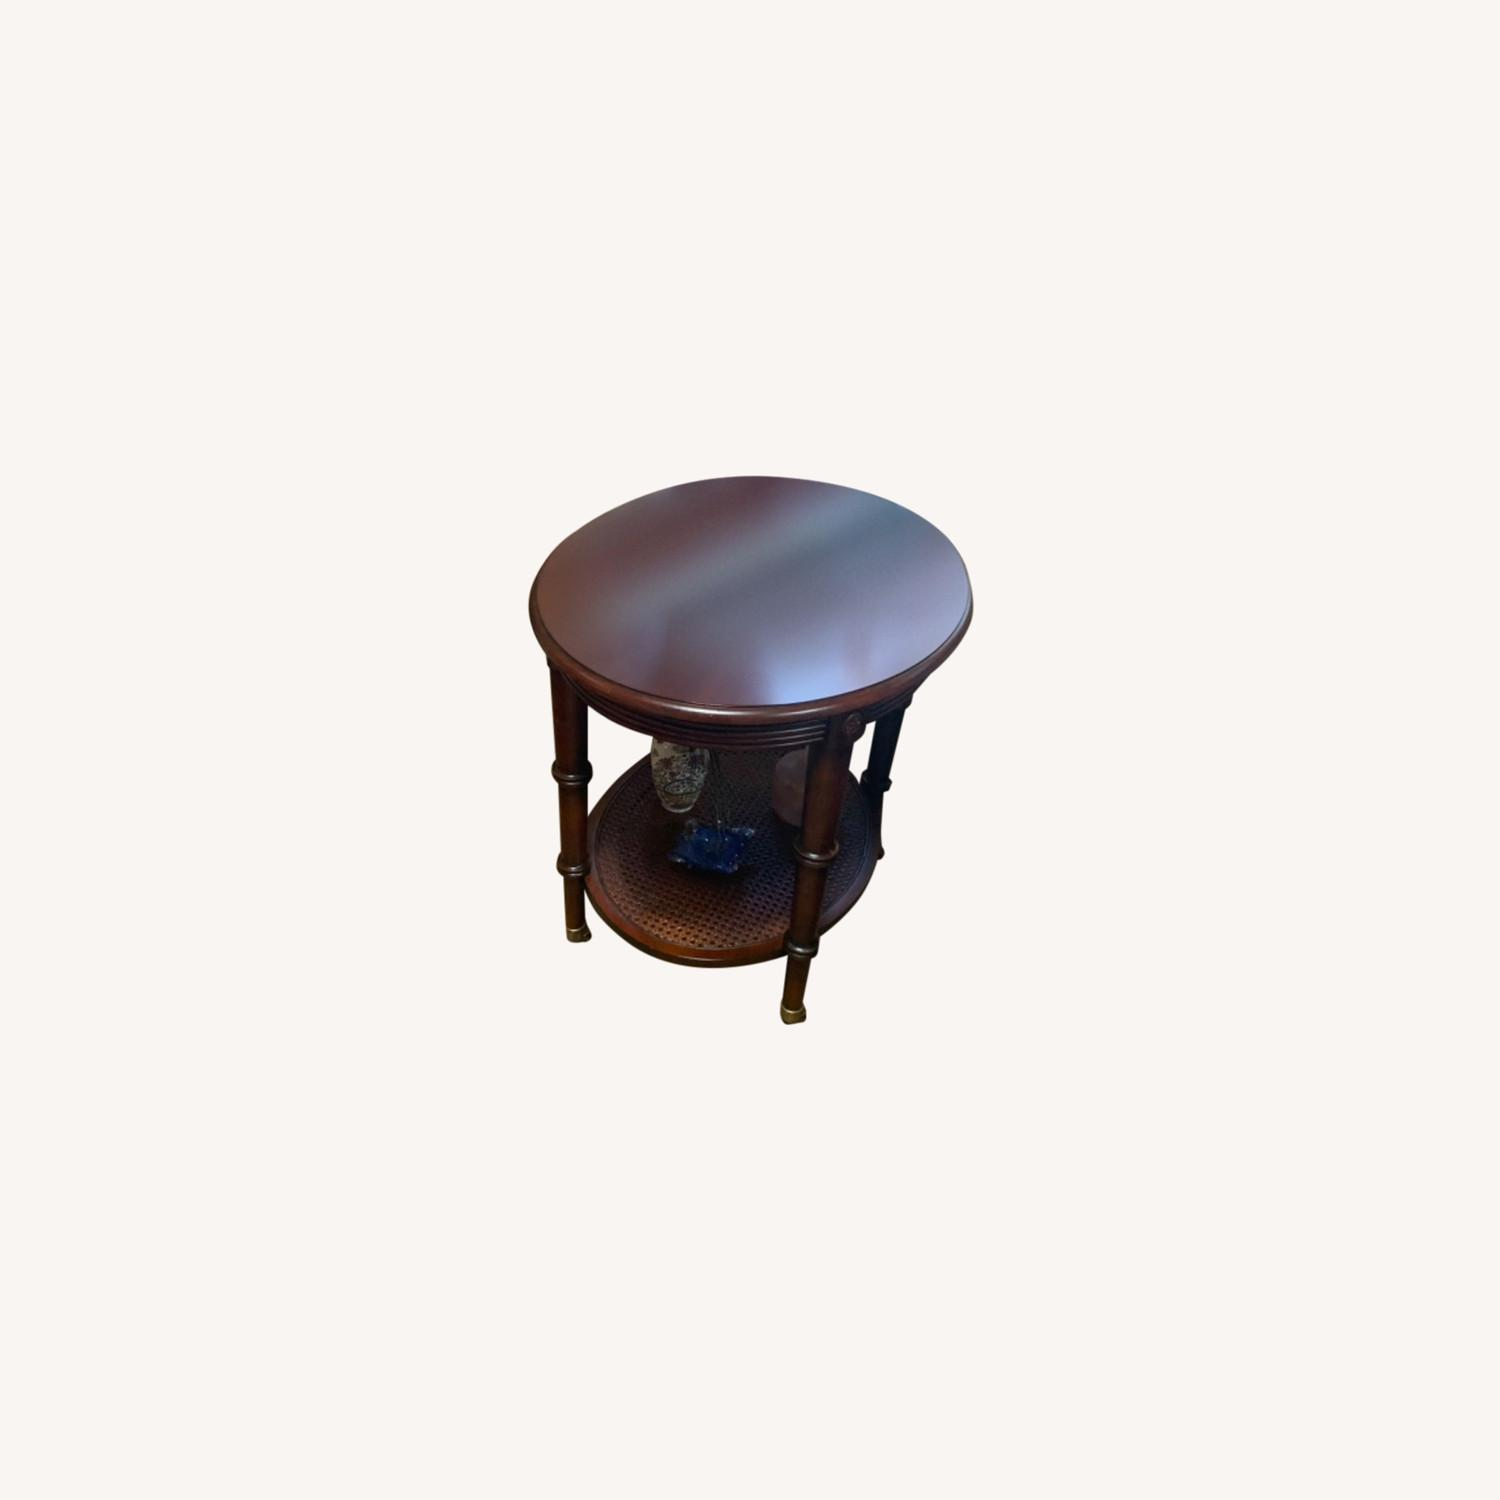 Ethan Allen Freeport End Table - image-3